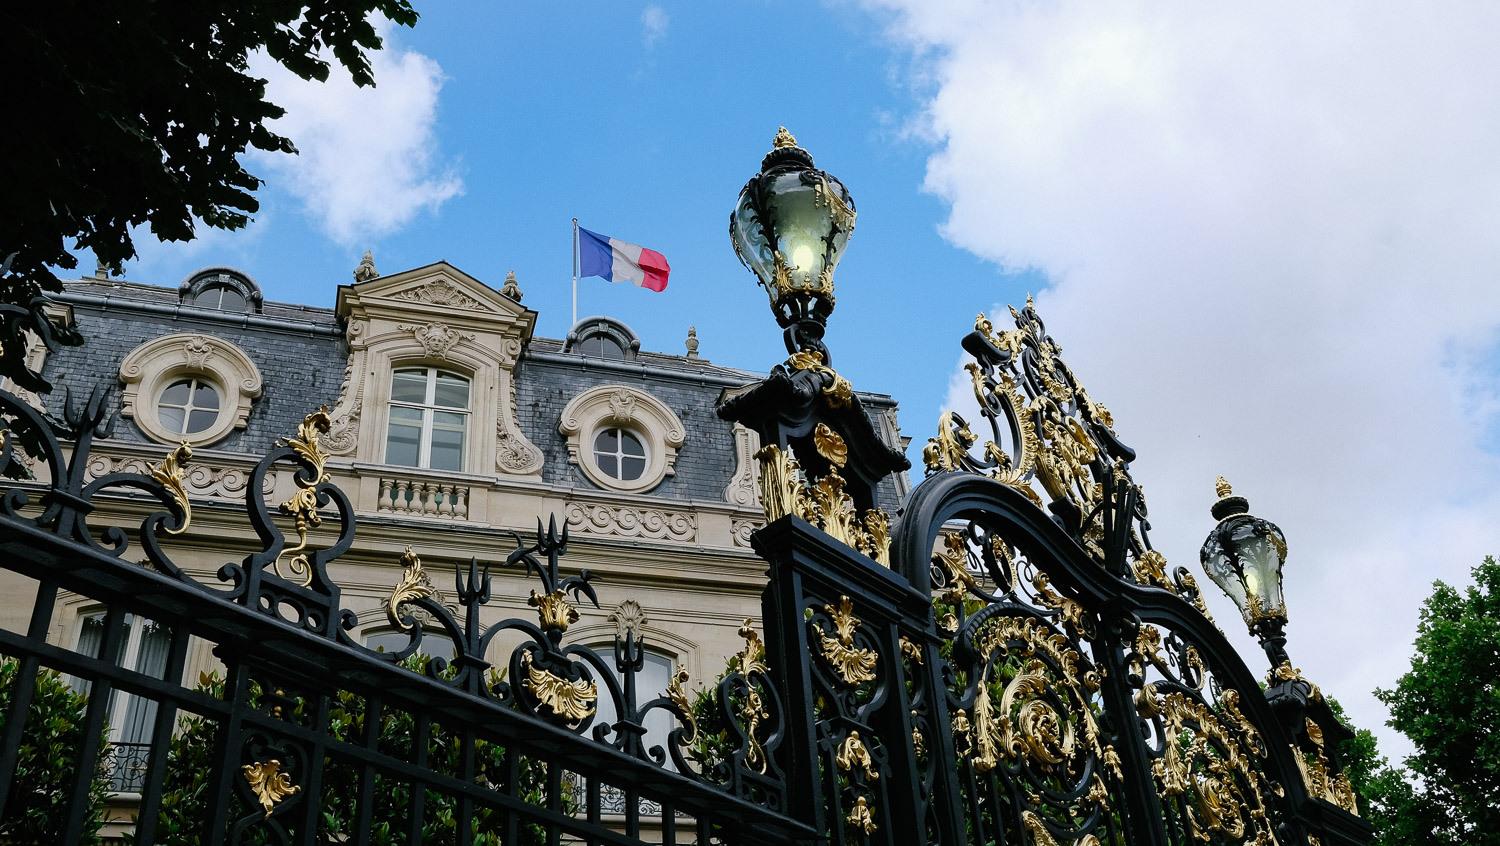 "An opulent iron gate in Paris. Just a taste of the amazing architecture the city has to offer. Travel photography and guide by © Natasha Lequepeys for ""And Then I Met Yoko"". #paris #paristravel #photoblog #travelguide #france #parisitinerary #parishighlights #parissights #travelblog #travelphotography #landscapephotography #travelitinerary #fujifilm #paristravelguide #architecturephotography #europe #travelblogger #wanderlust #explore #travel"